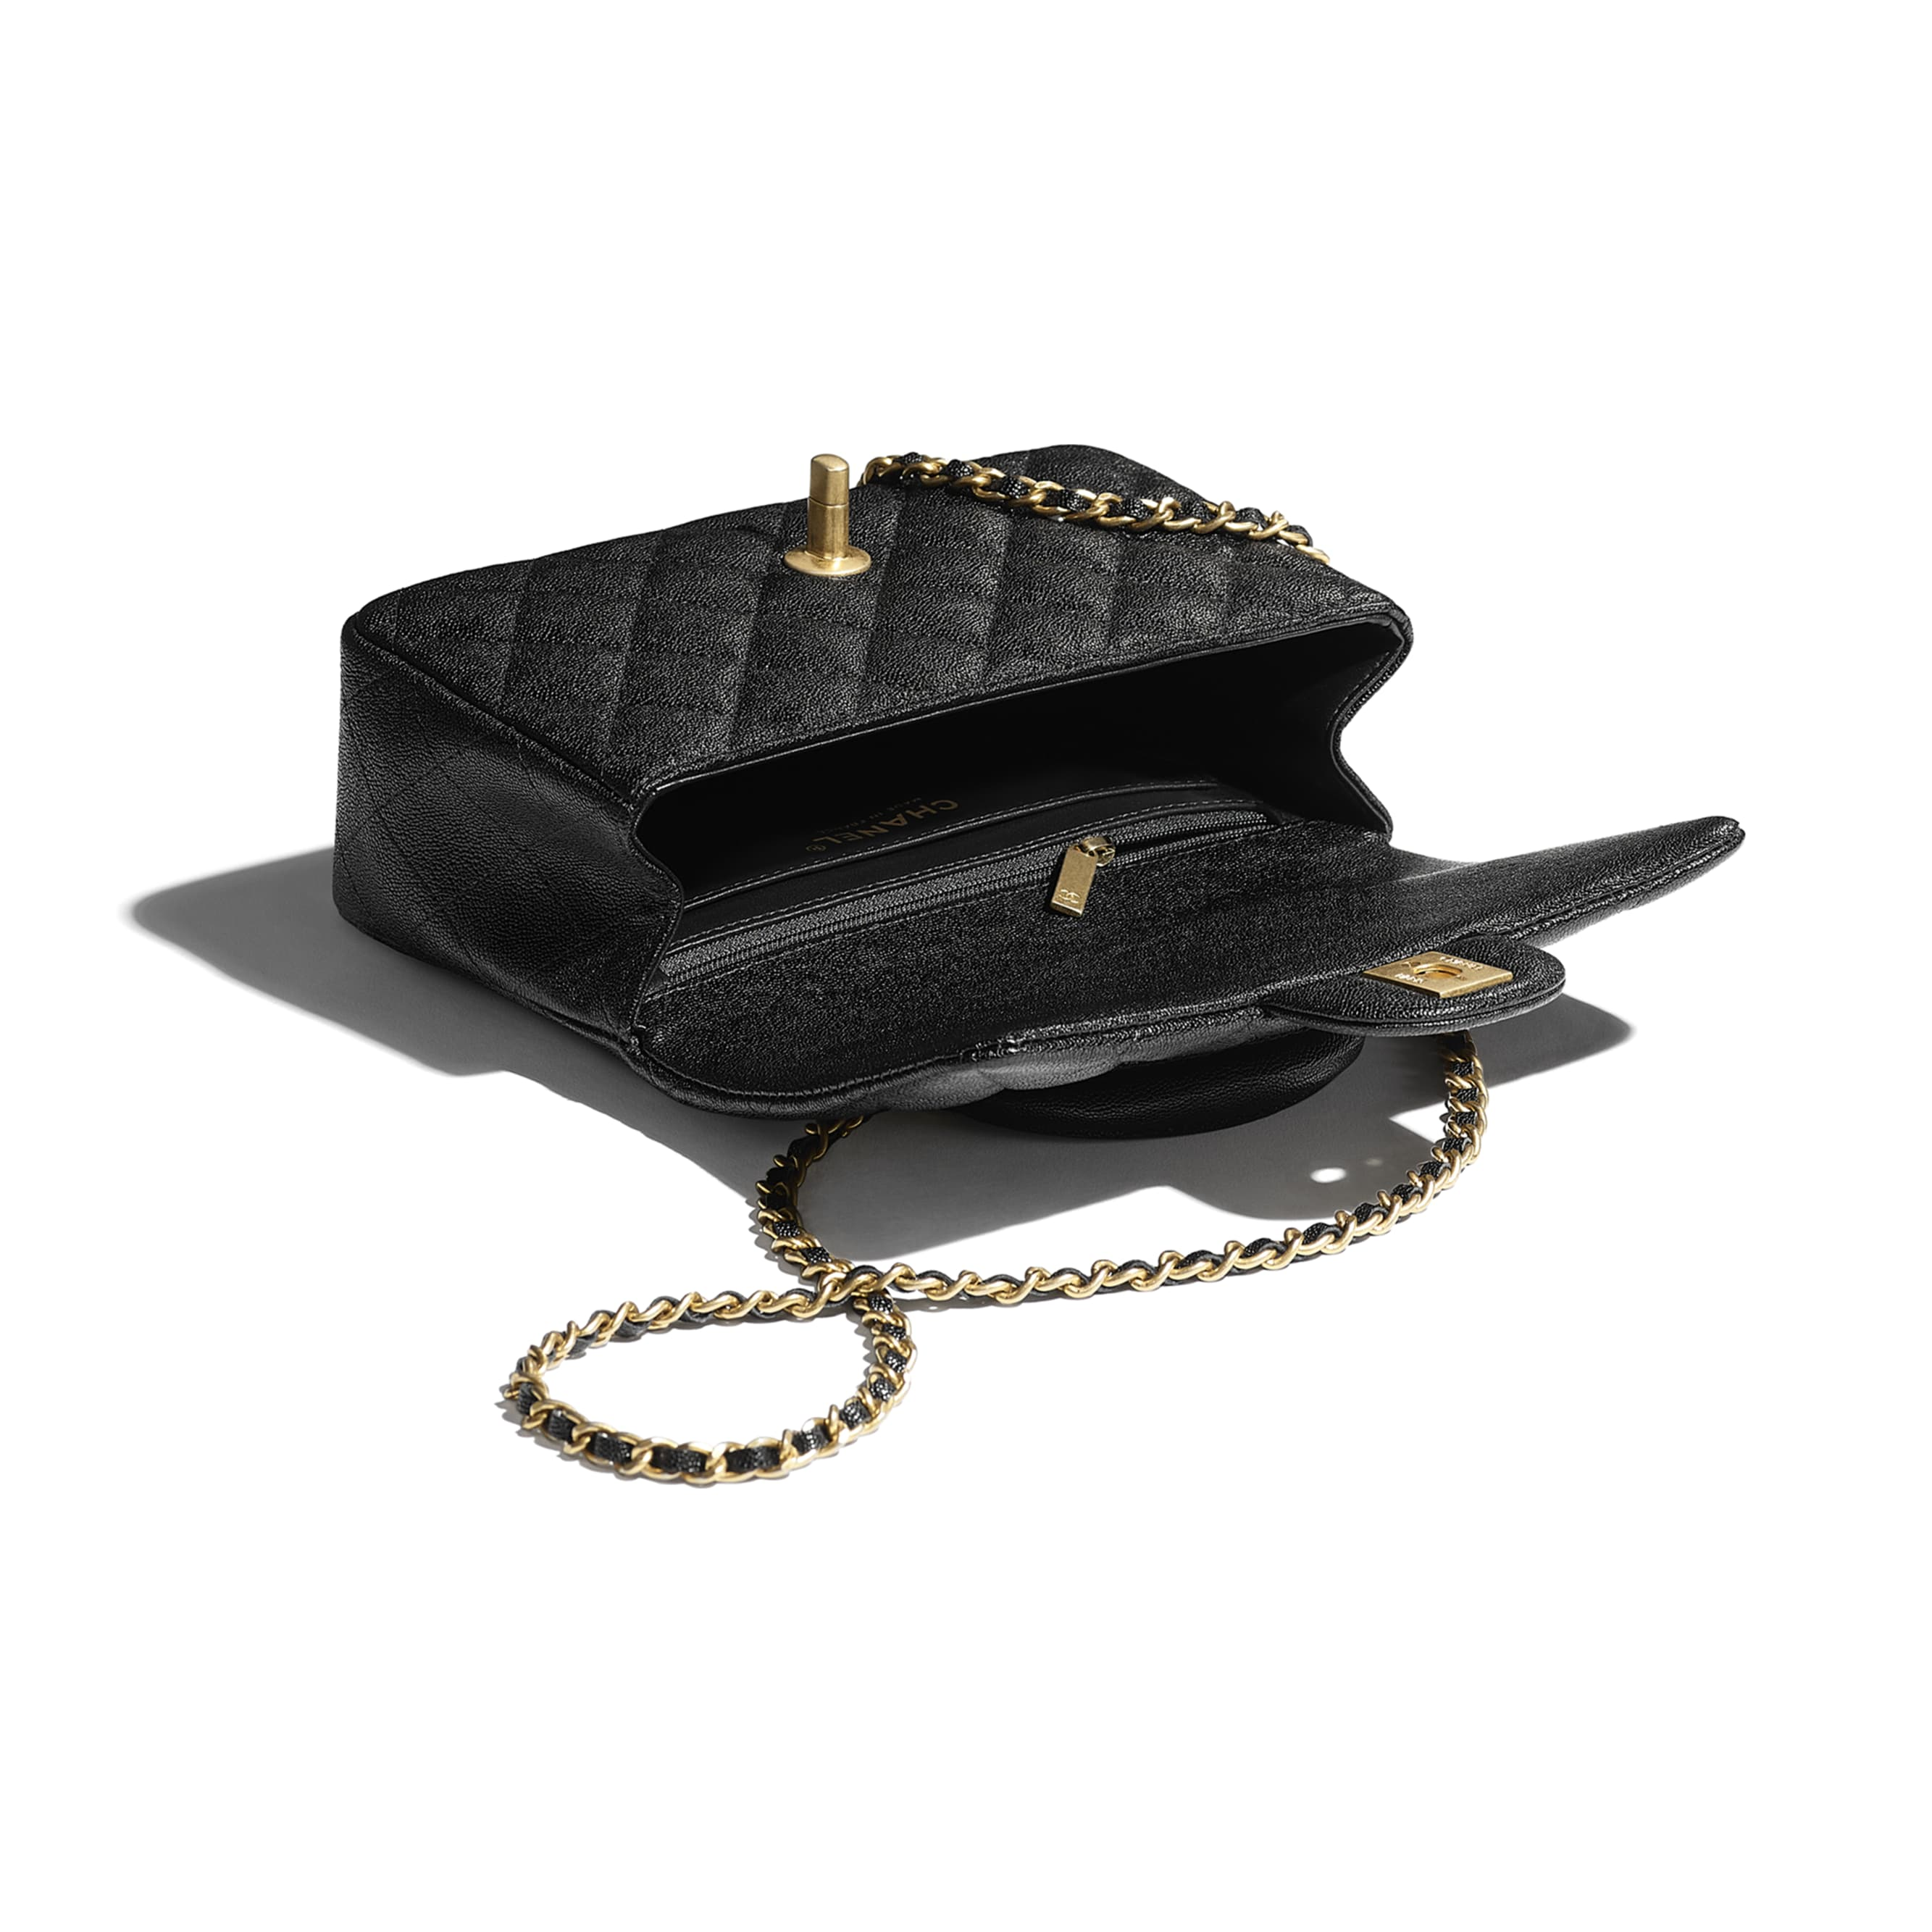 Mini Flap Bag with Top Handle - Black - Grained Calfskin & Gold-Tone Metal - CHANEL - Other view - see standard sized version